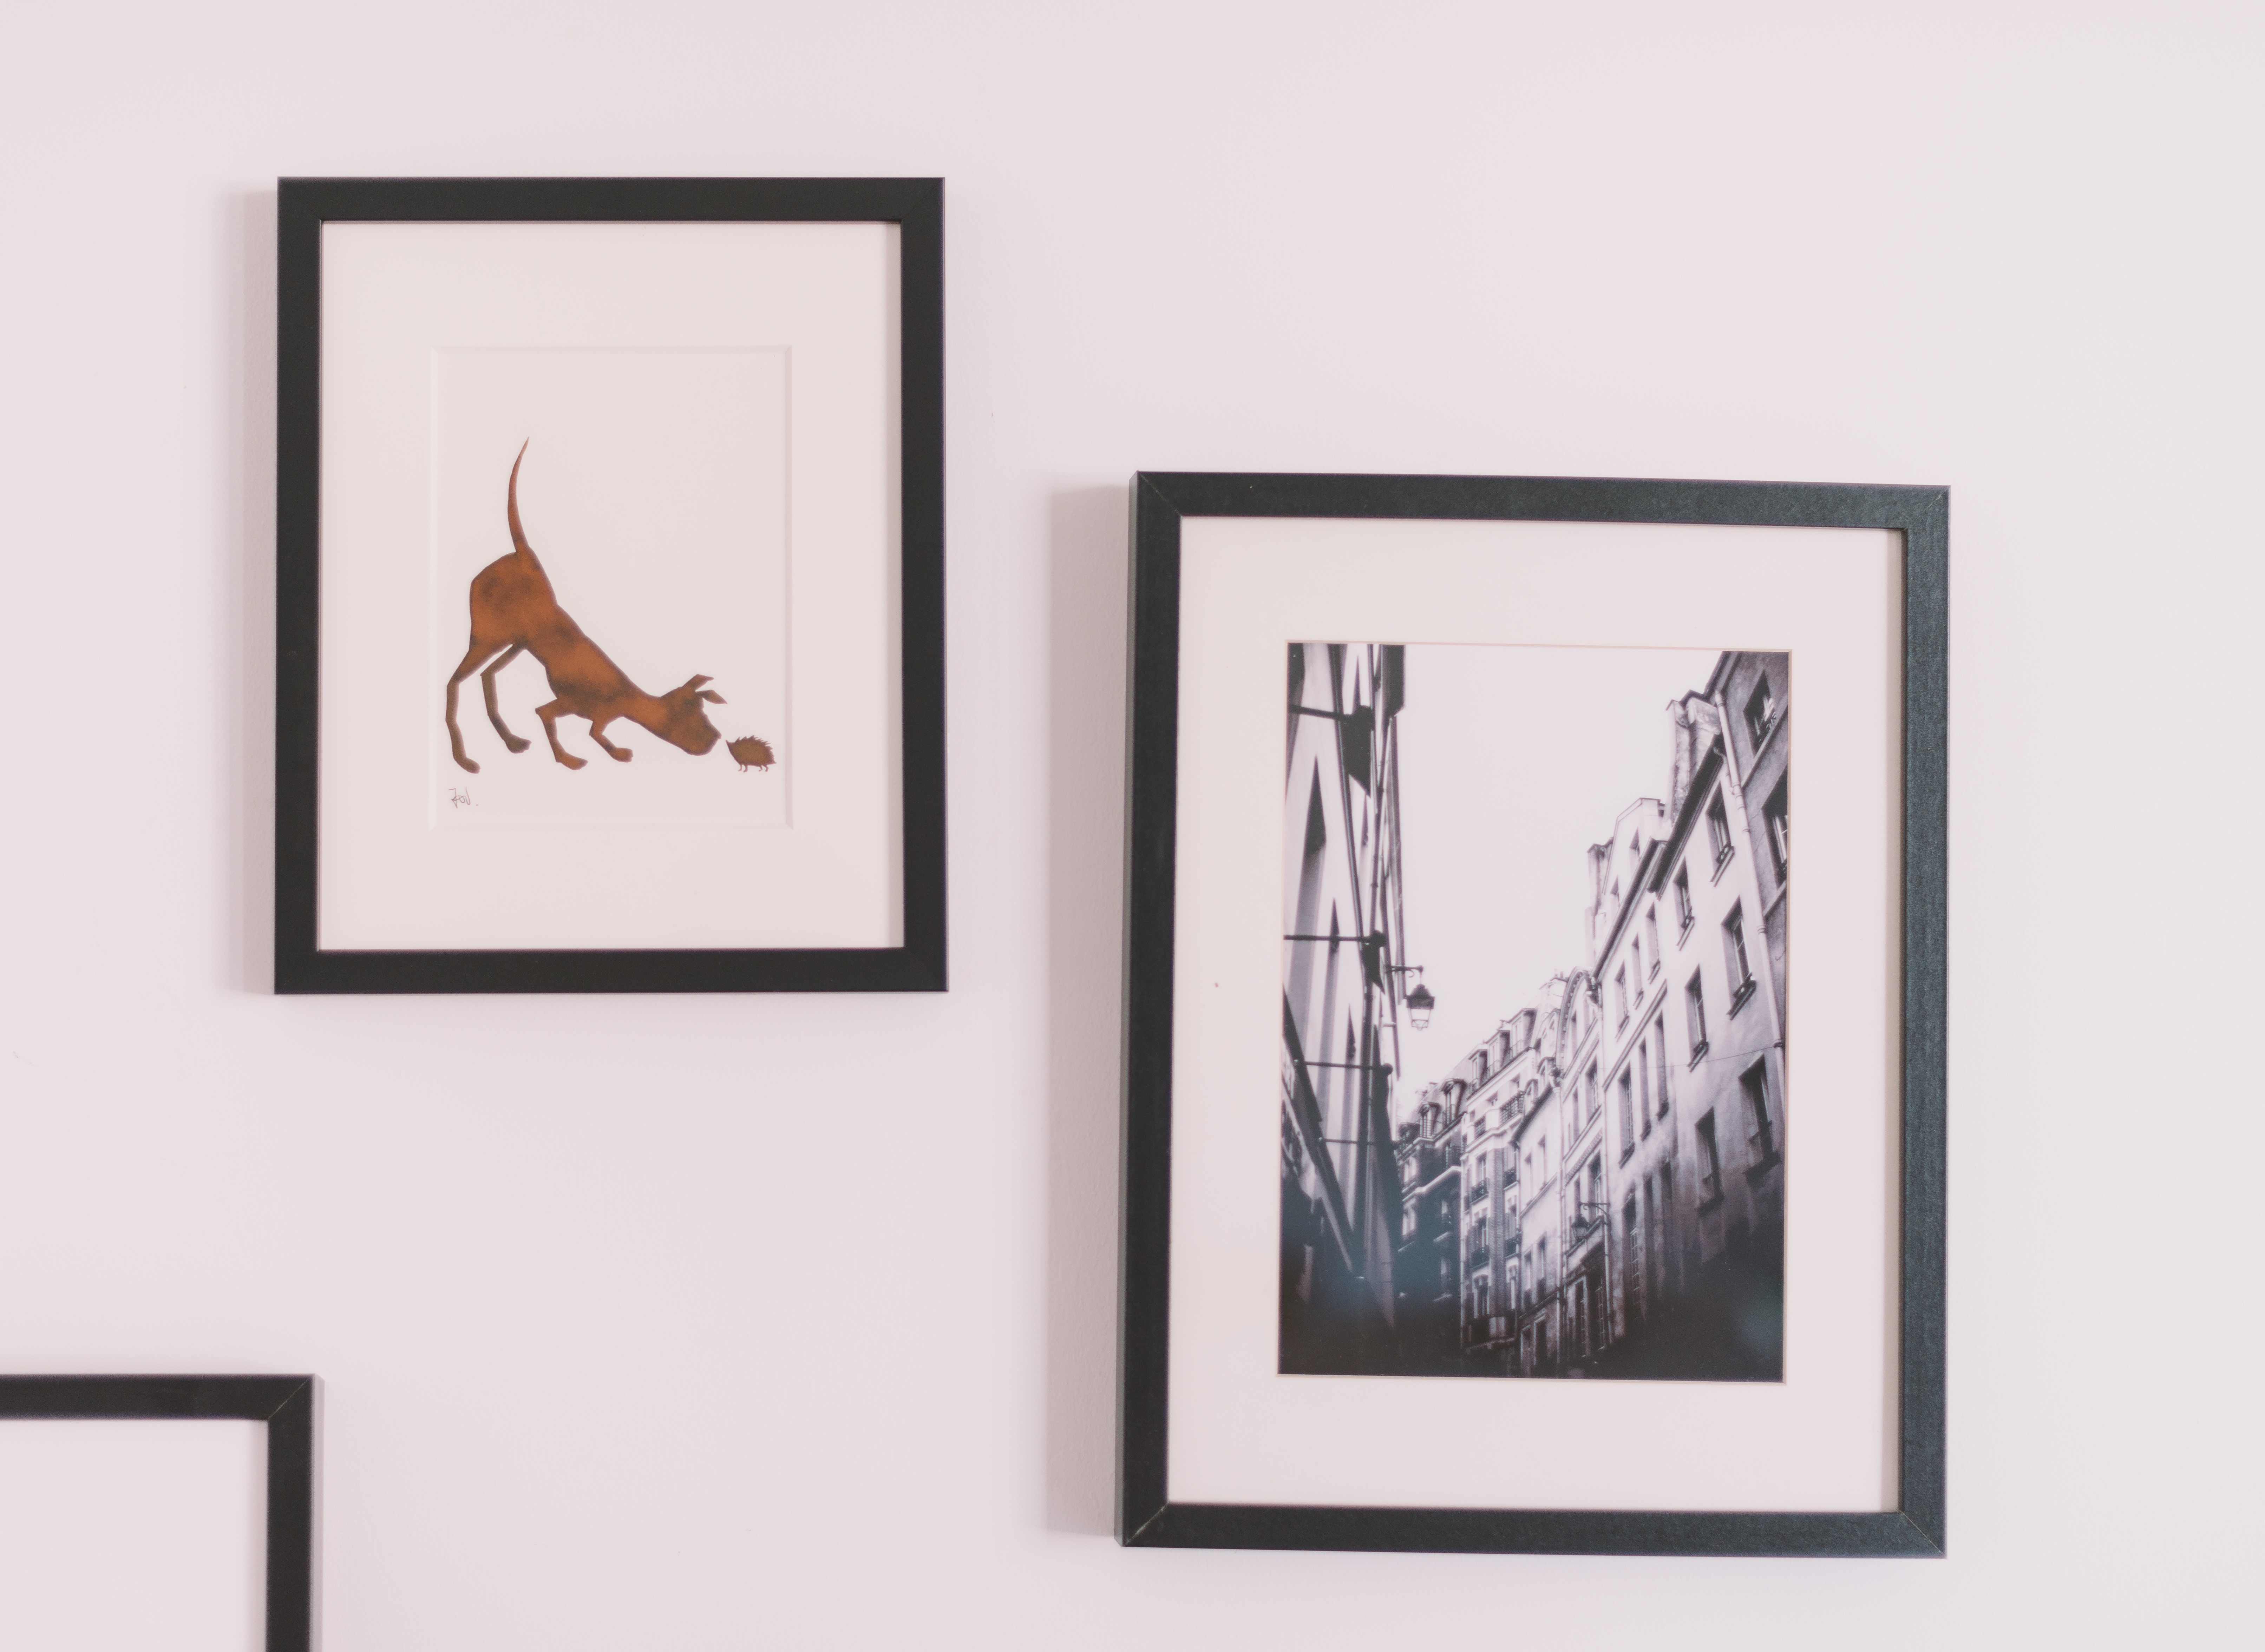 Image of framed art on an apartment wall